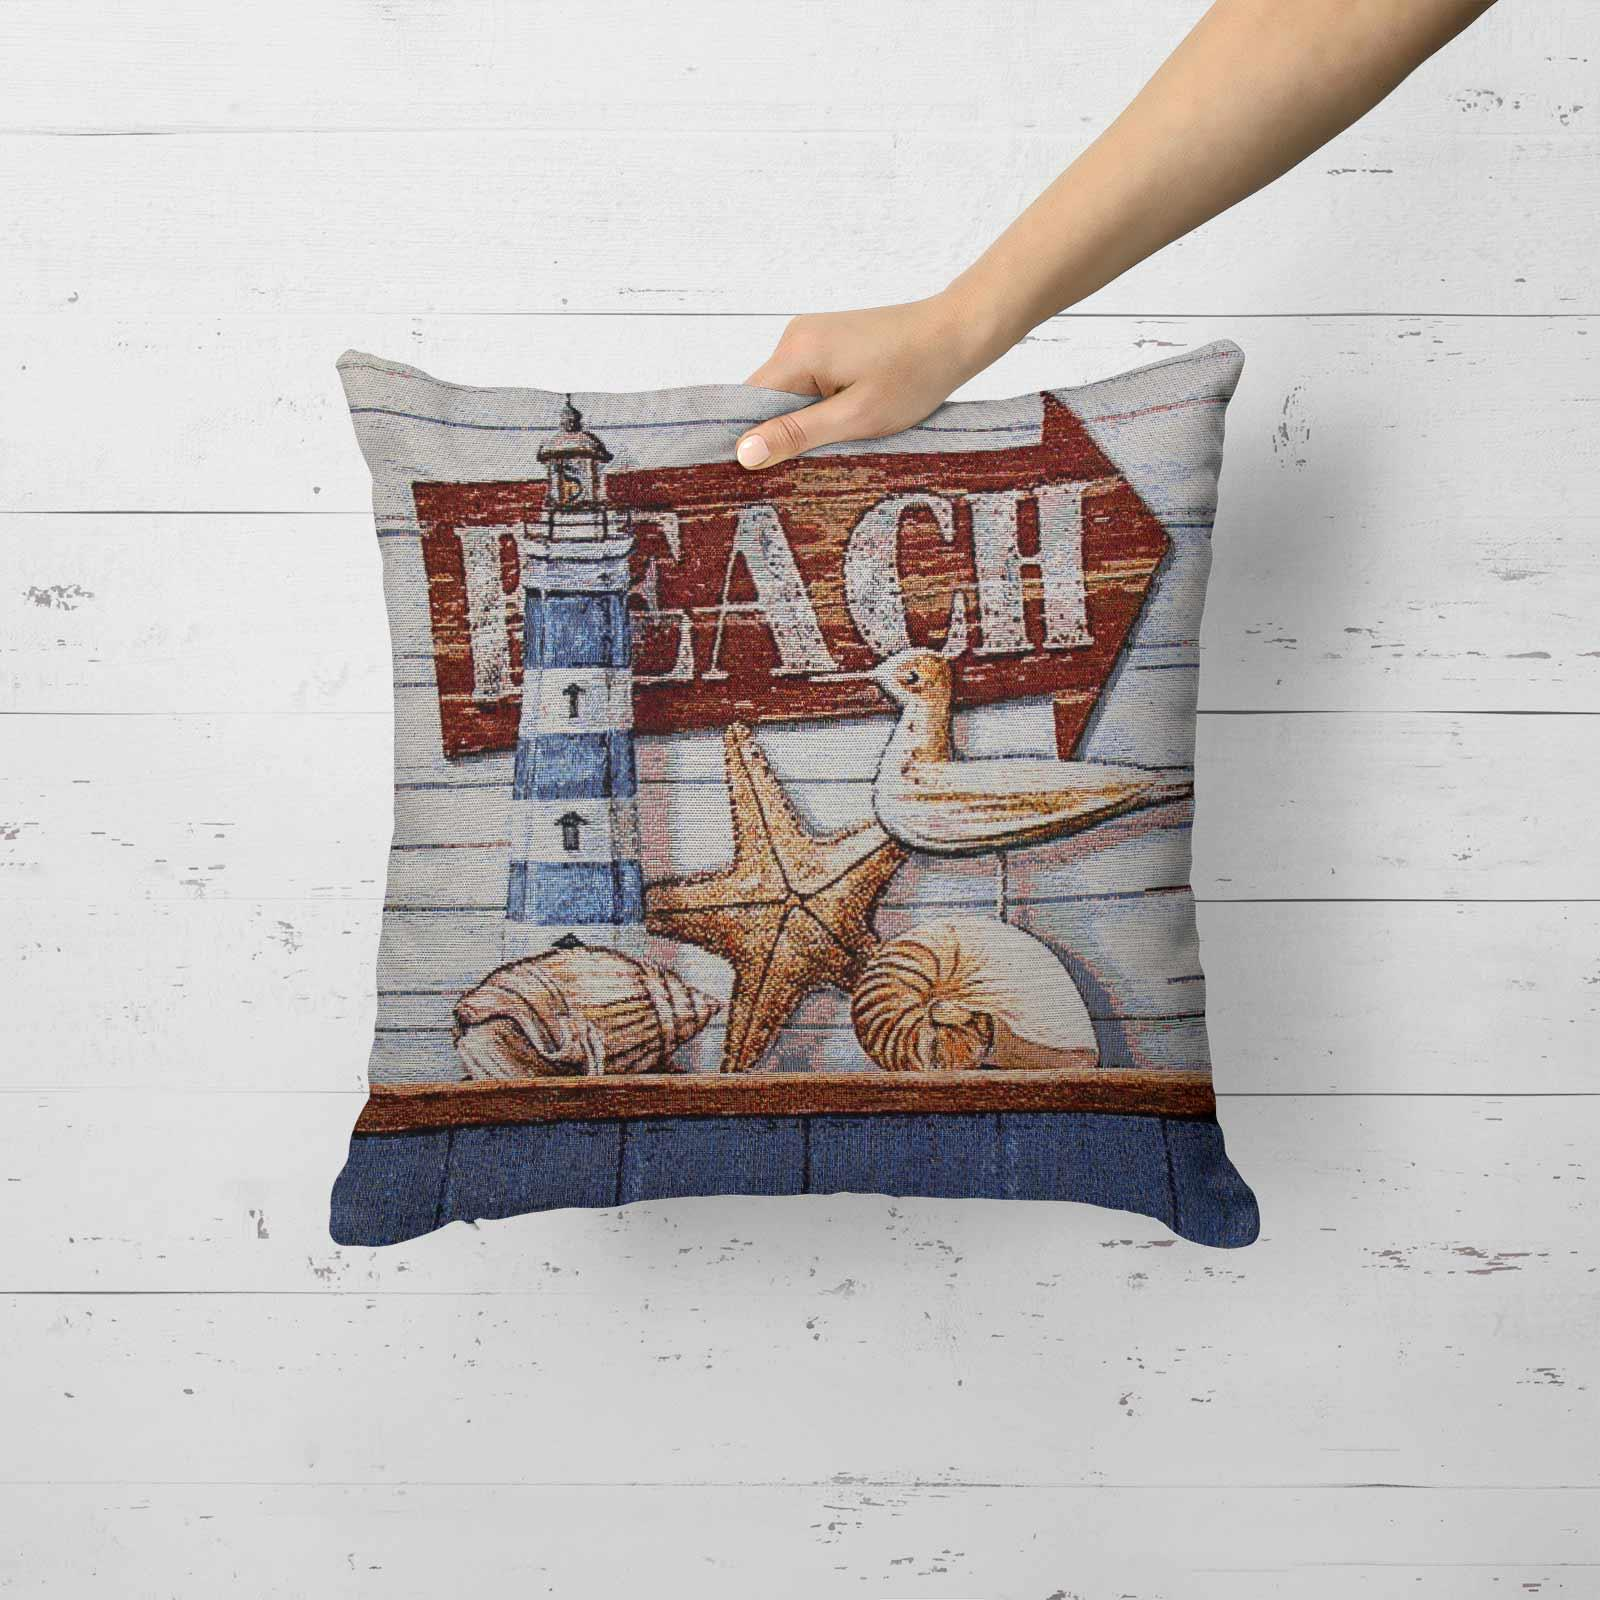 Tapestry-Cushion-Covers-Vintage-Pillow-Cover-Collection-18-034-45cm-Filled-Cushions thumbnail 10